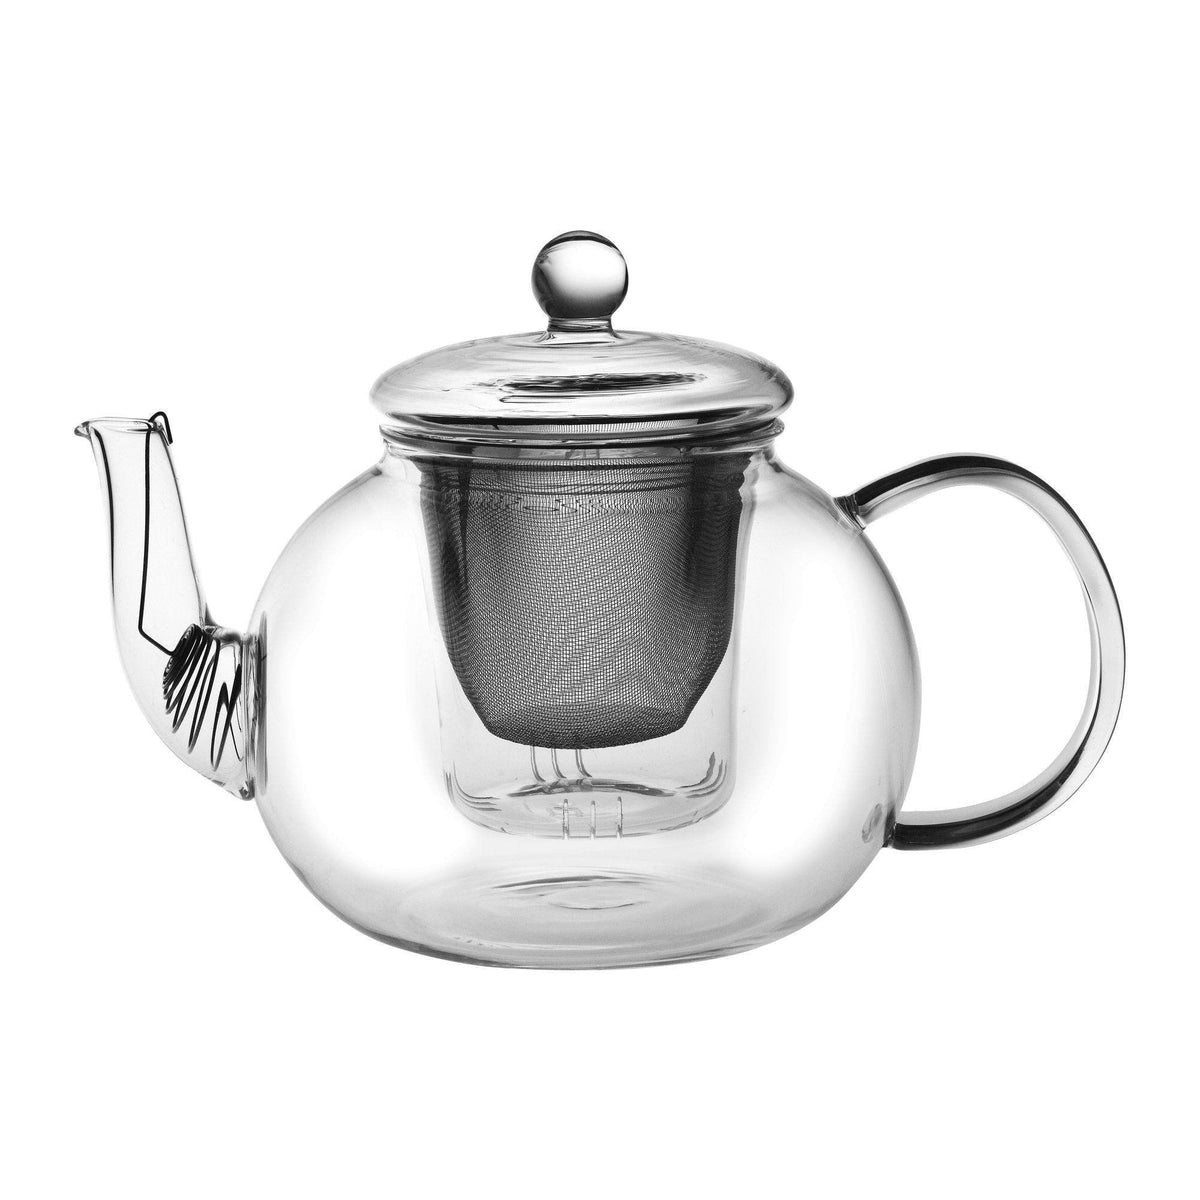 Argon Tableware Large Glass 3 Piece Teapot - Suitable For Loose Leaf Tea